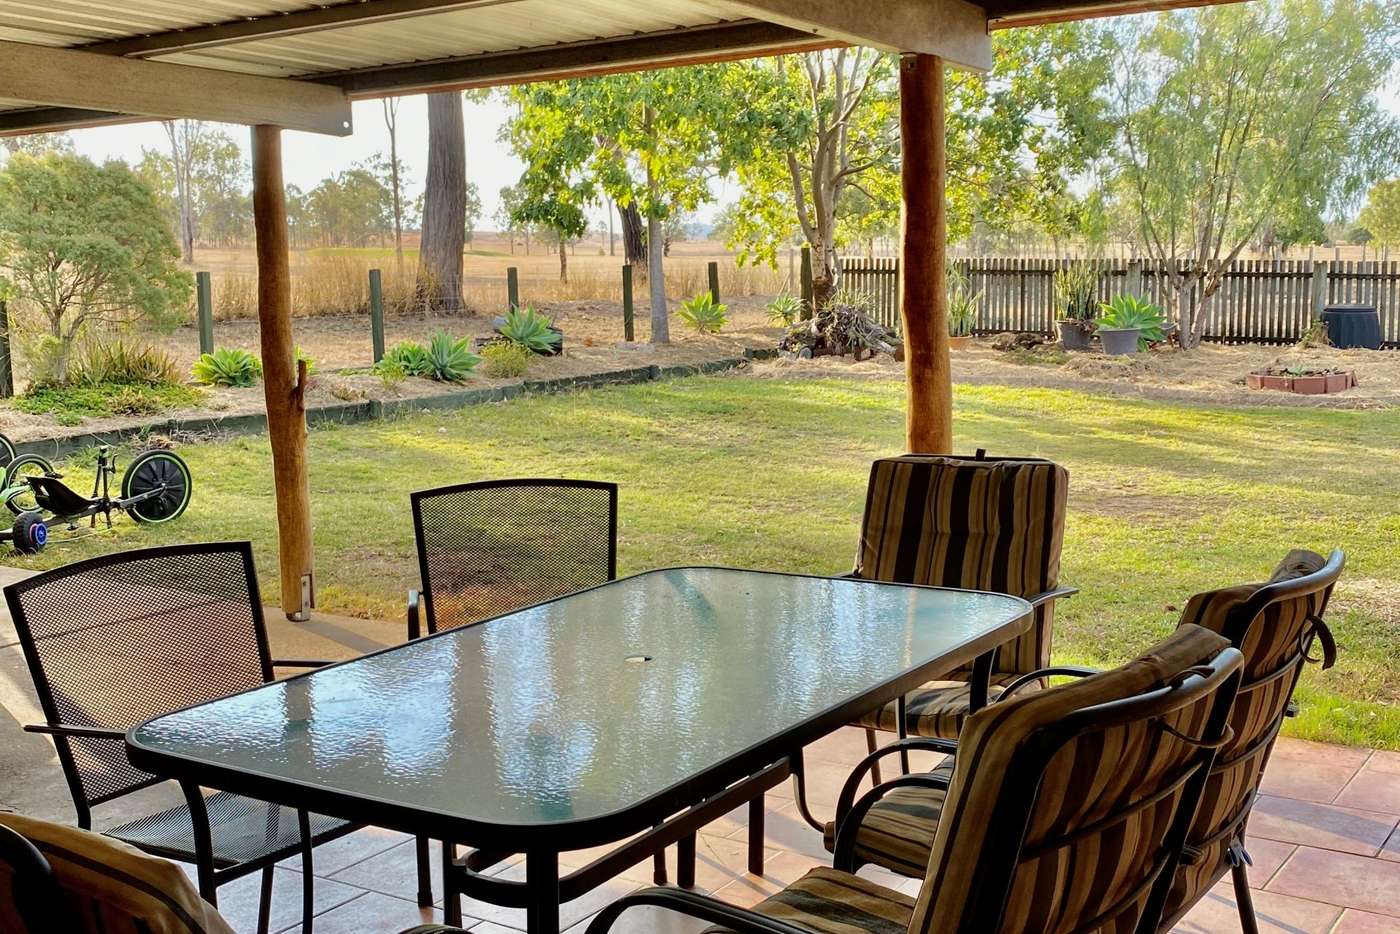 Main view of Homely house listing, 33 Annette Street, Toogoolawah QLD 4313